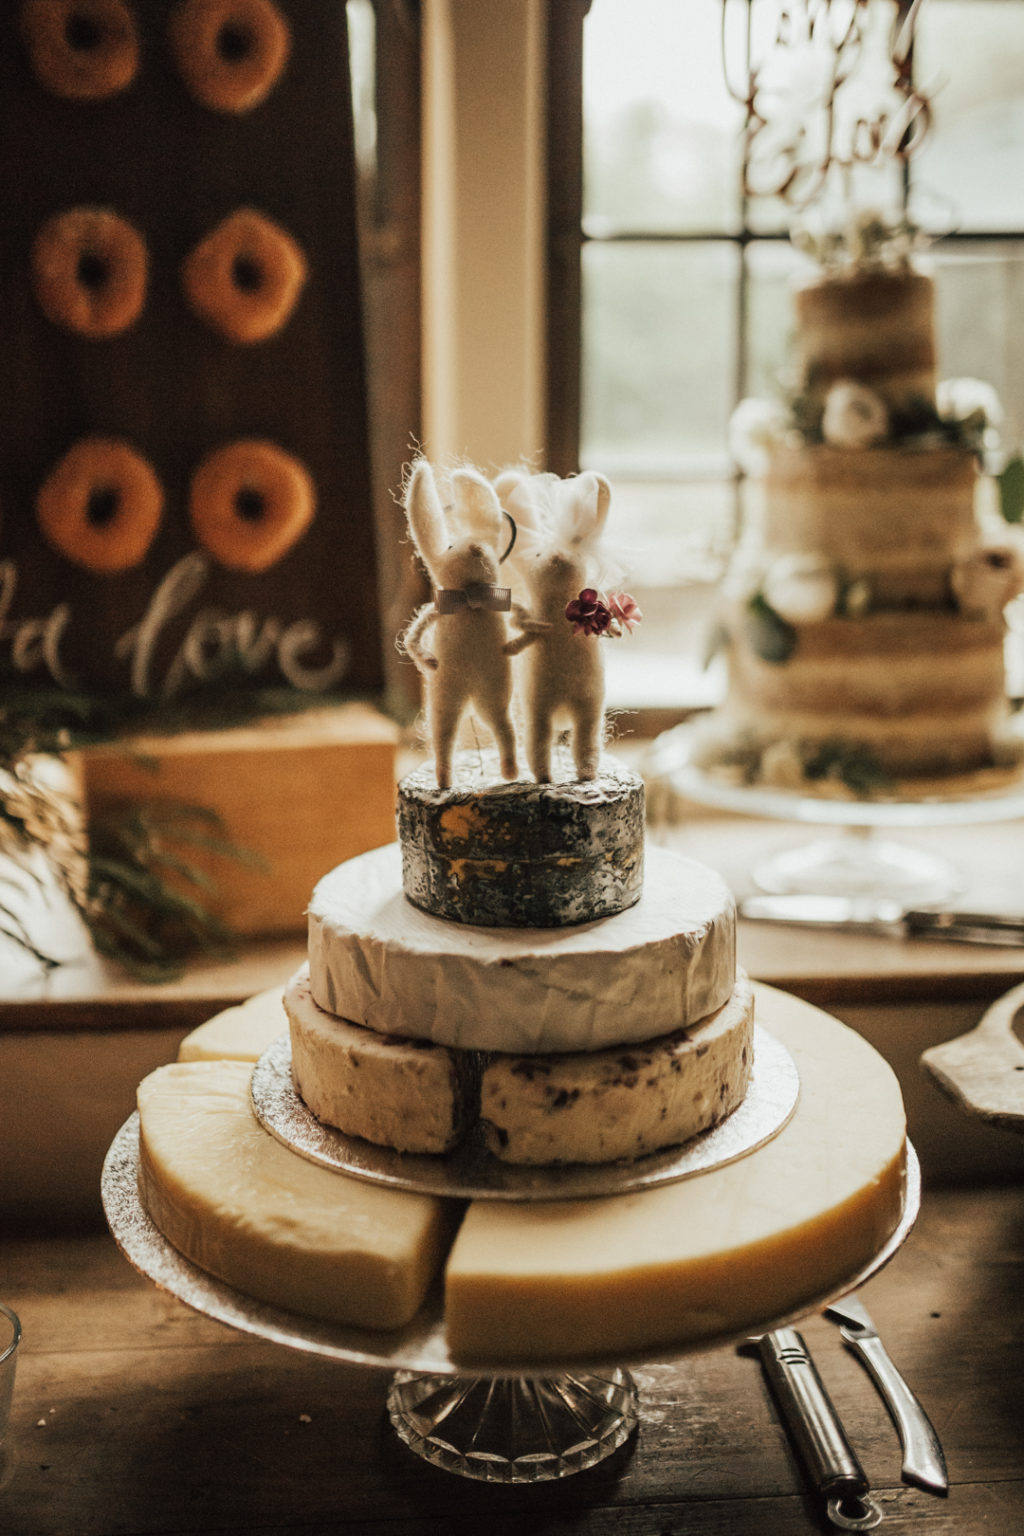 A usual wedding cake was substituted with a cheese tower and funny mice toppers